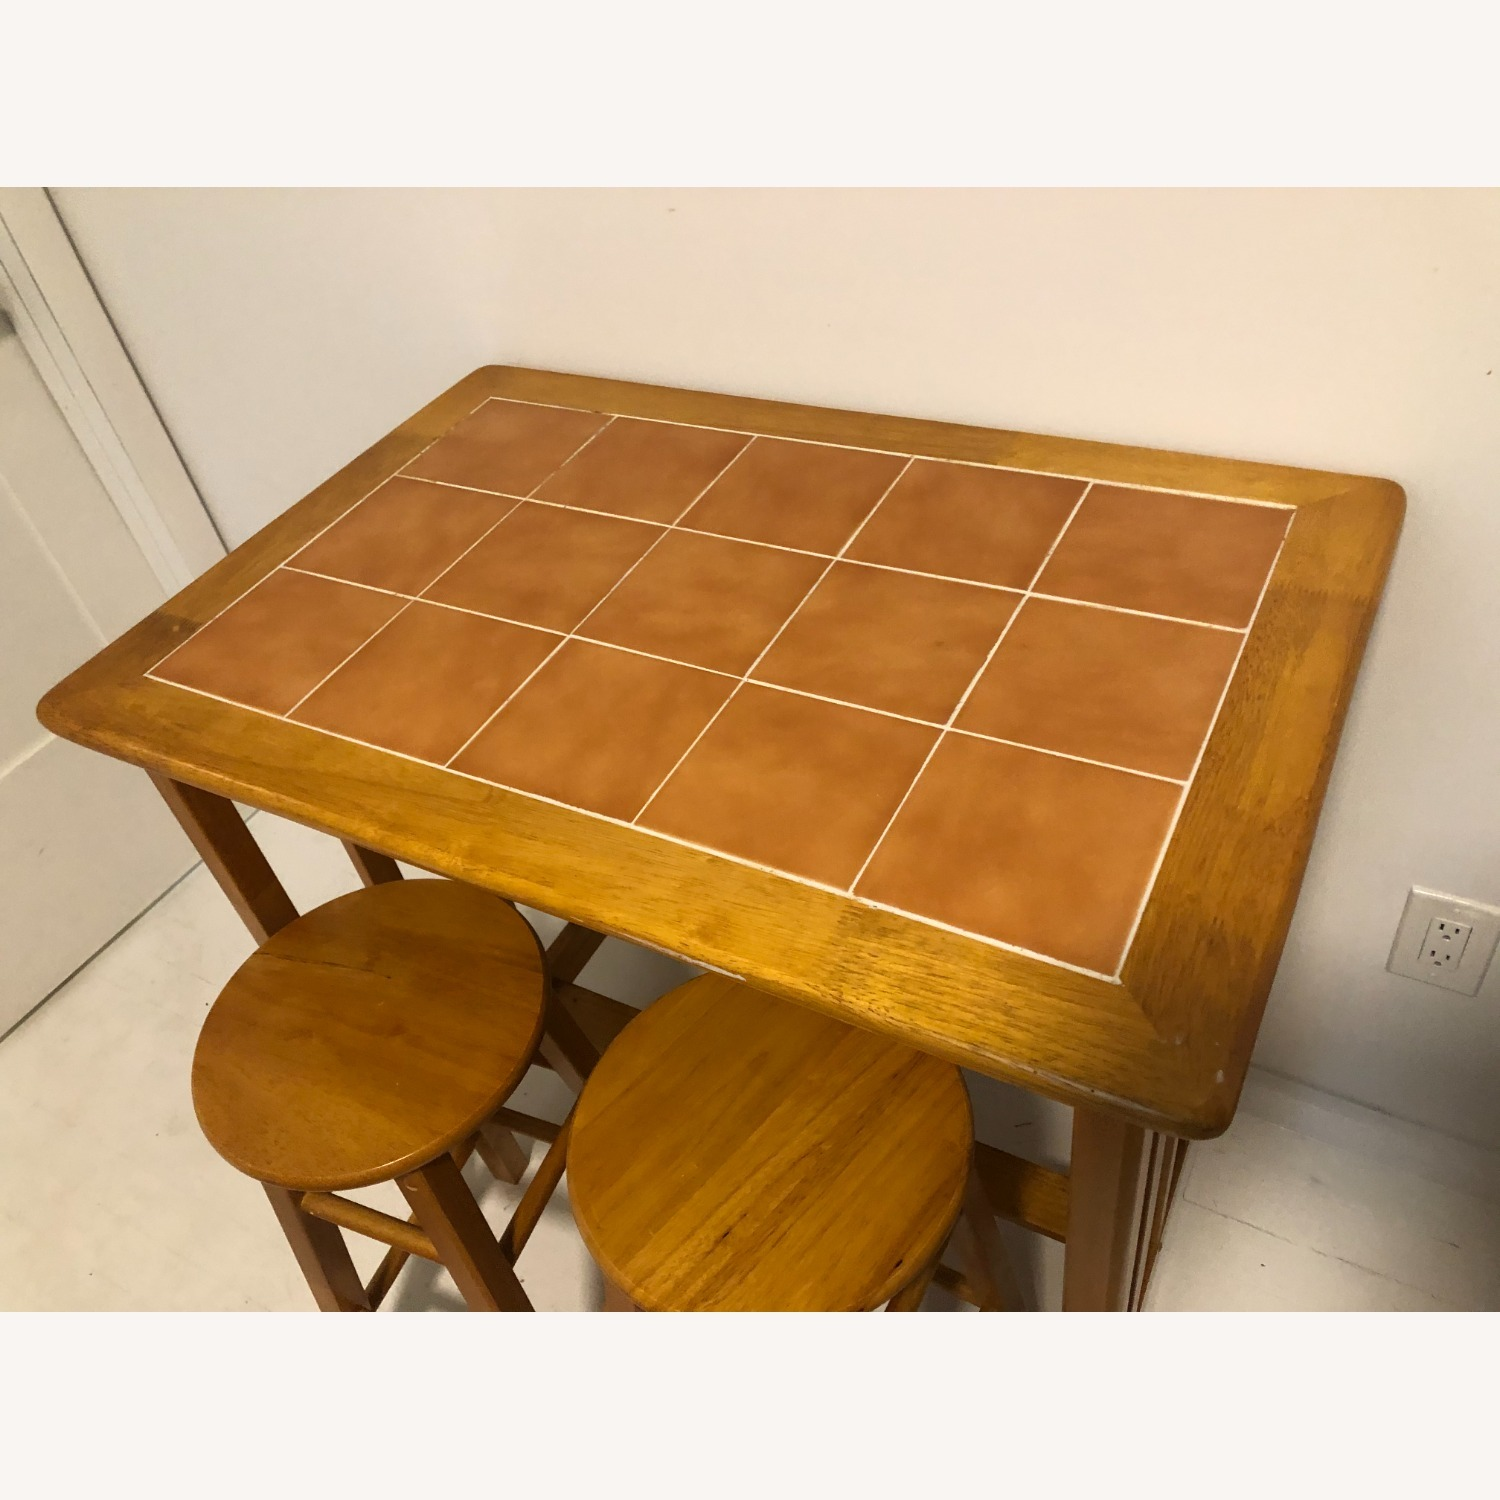 Maple and Tile Bar with Barstools - image-1